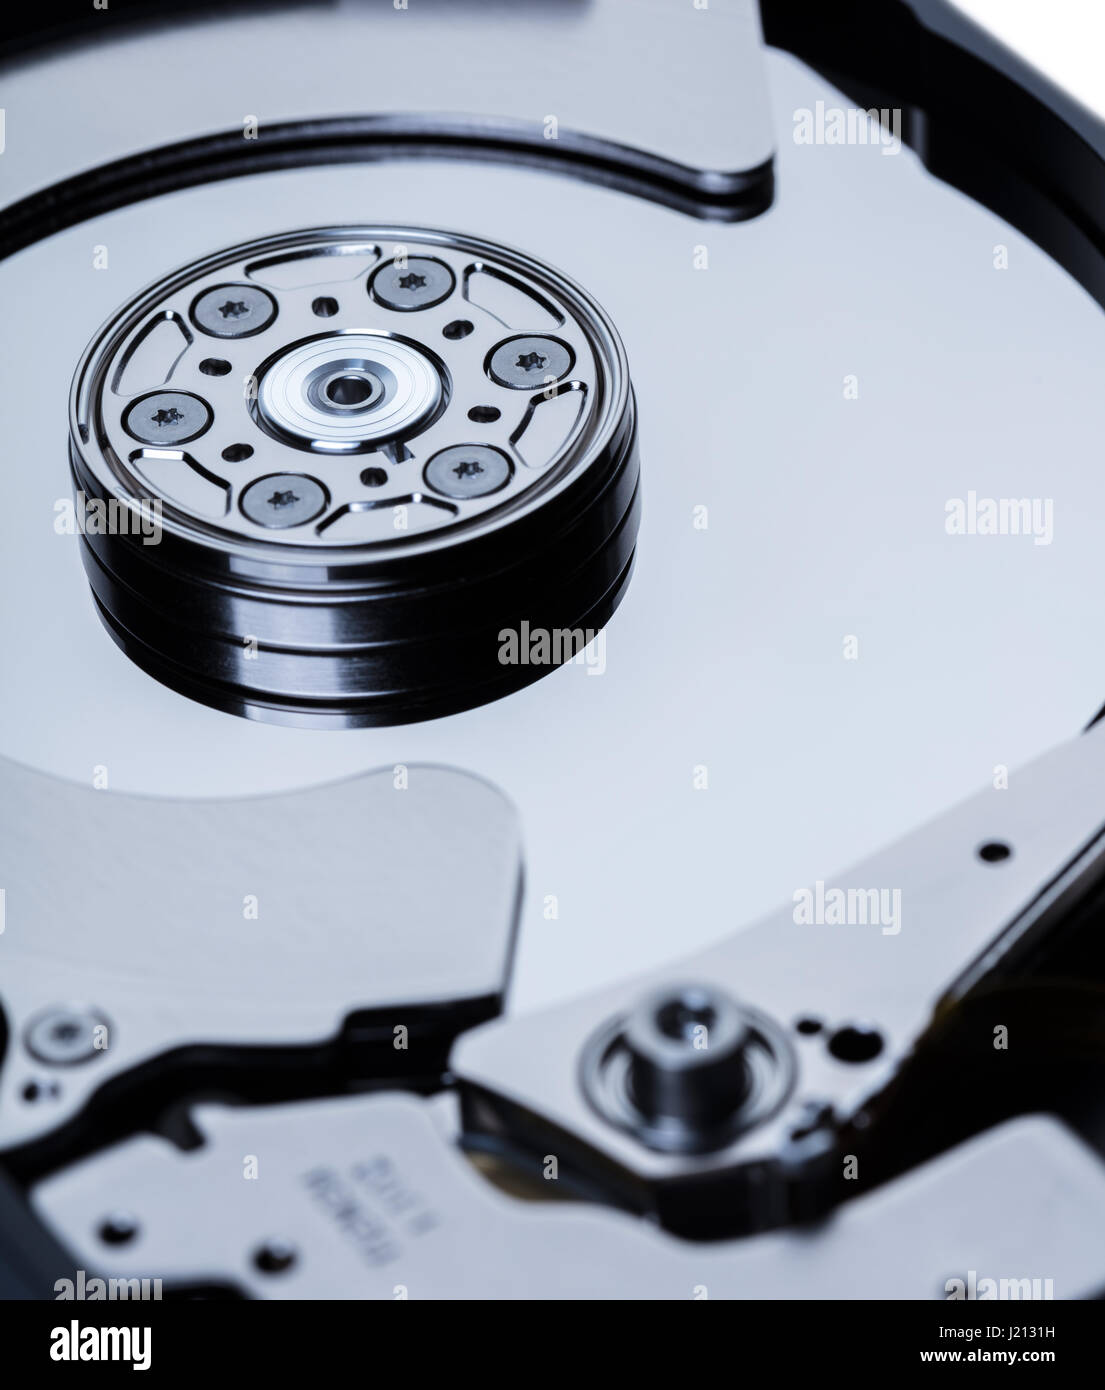 how to hard drive memory